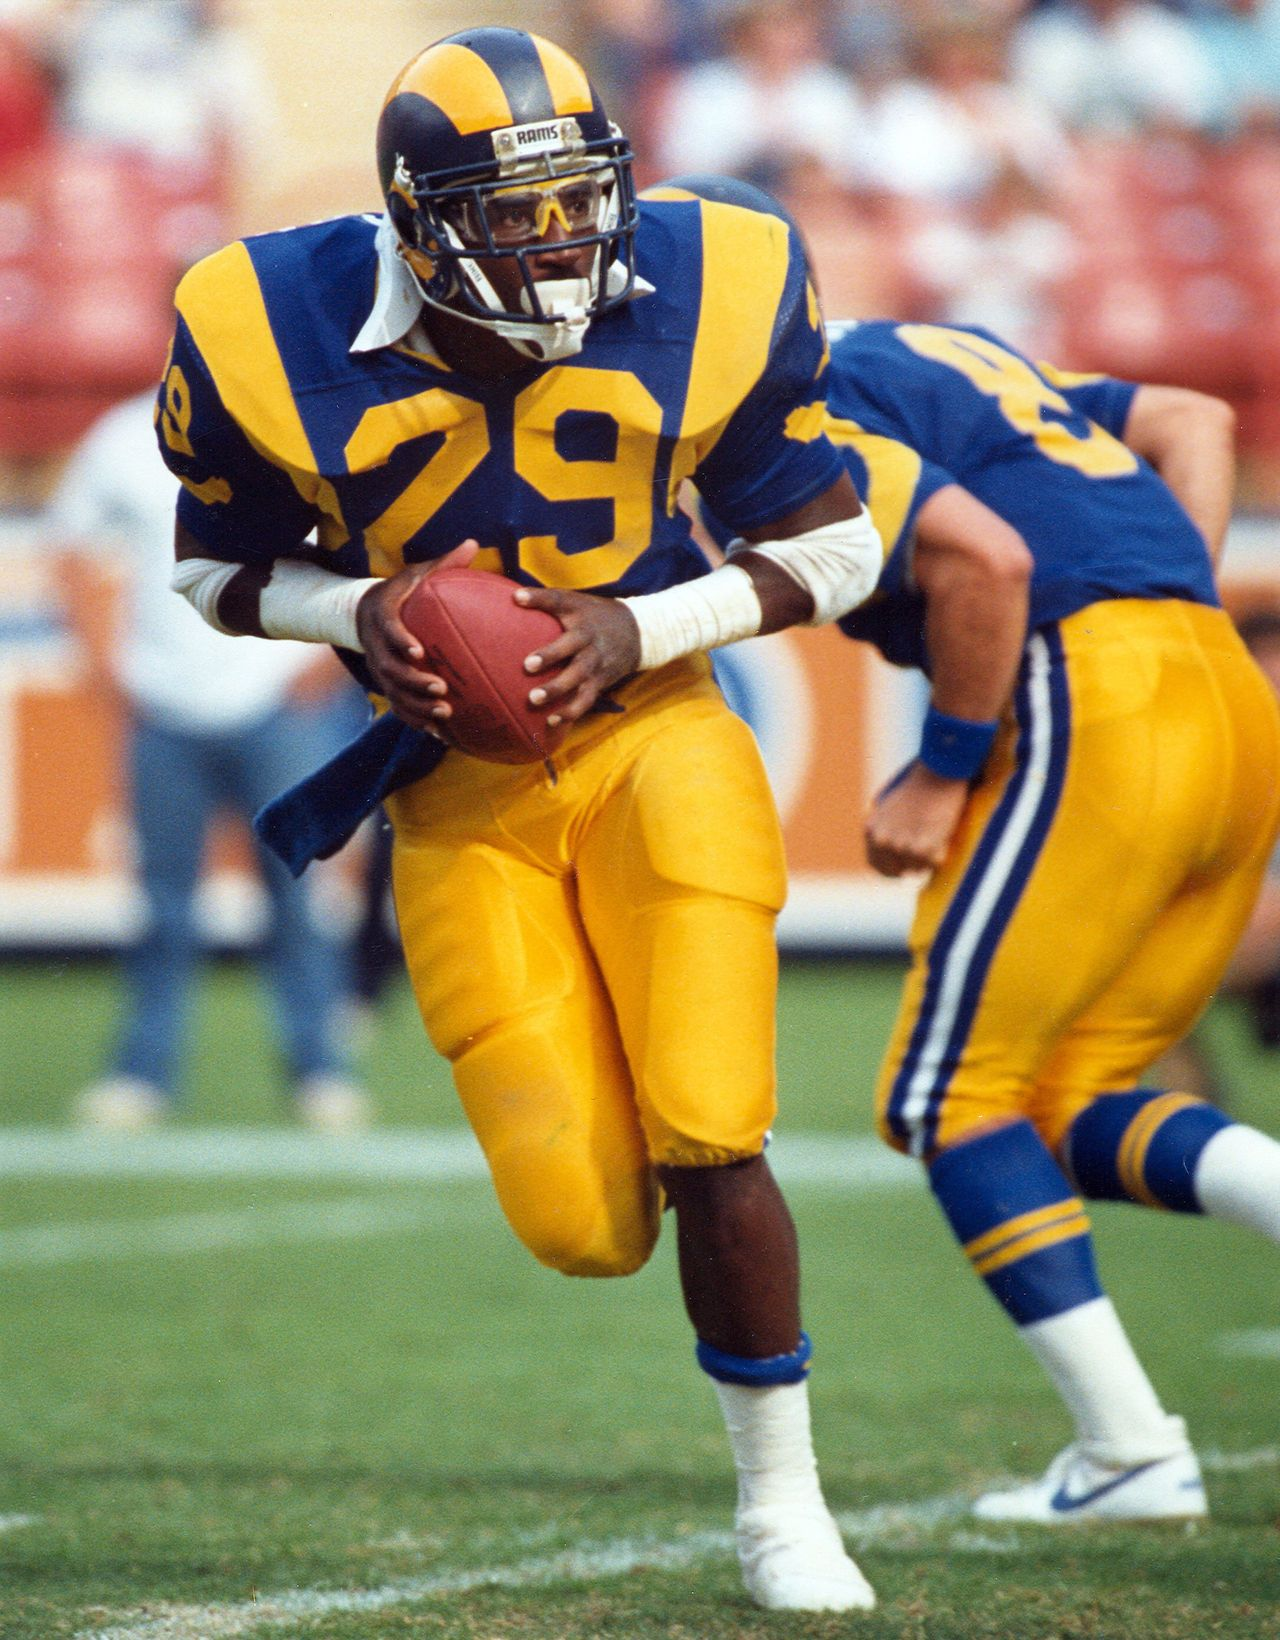 NFL & Rams Record: Eric Dickerson (